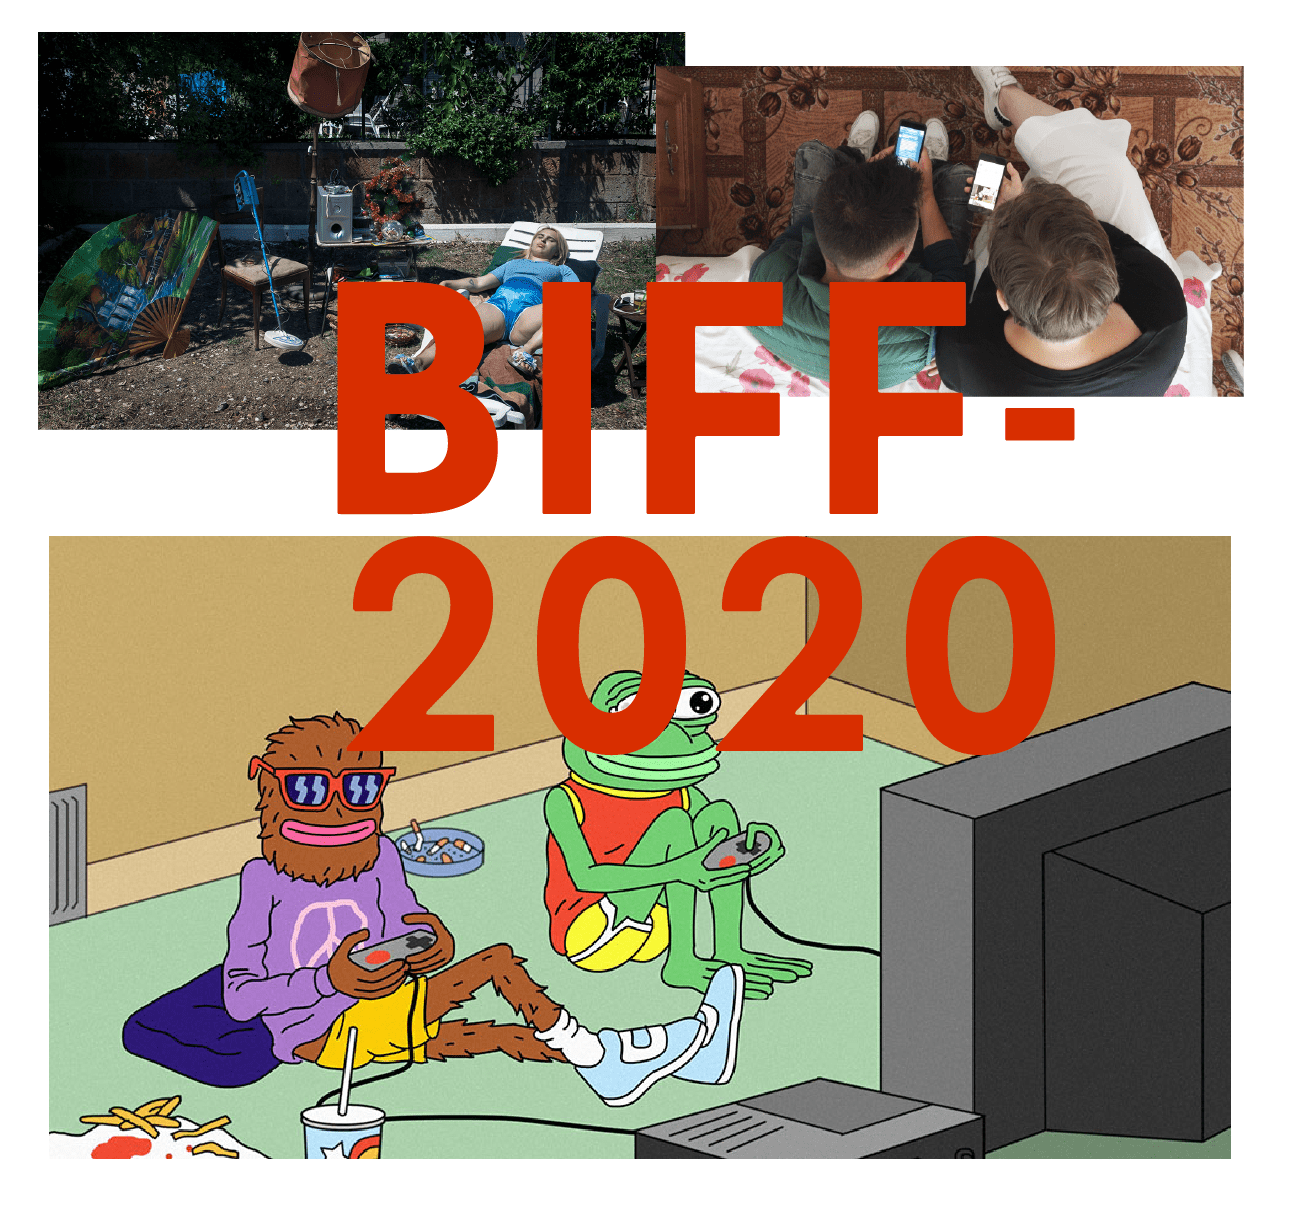 Samviten anbefaler BIFF 2020: Feels good man, Bad tales & Welcome to Chechnya